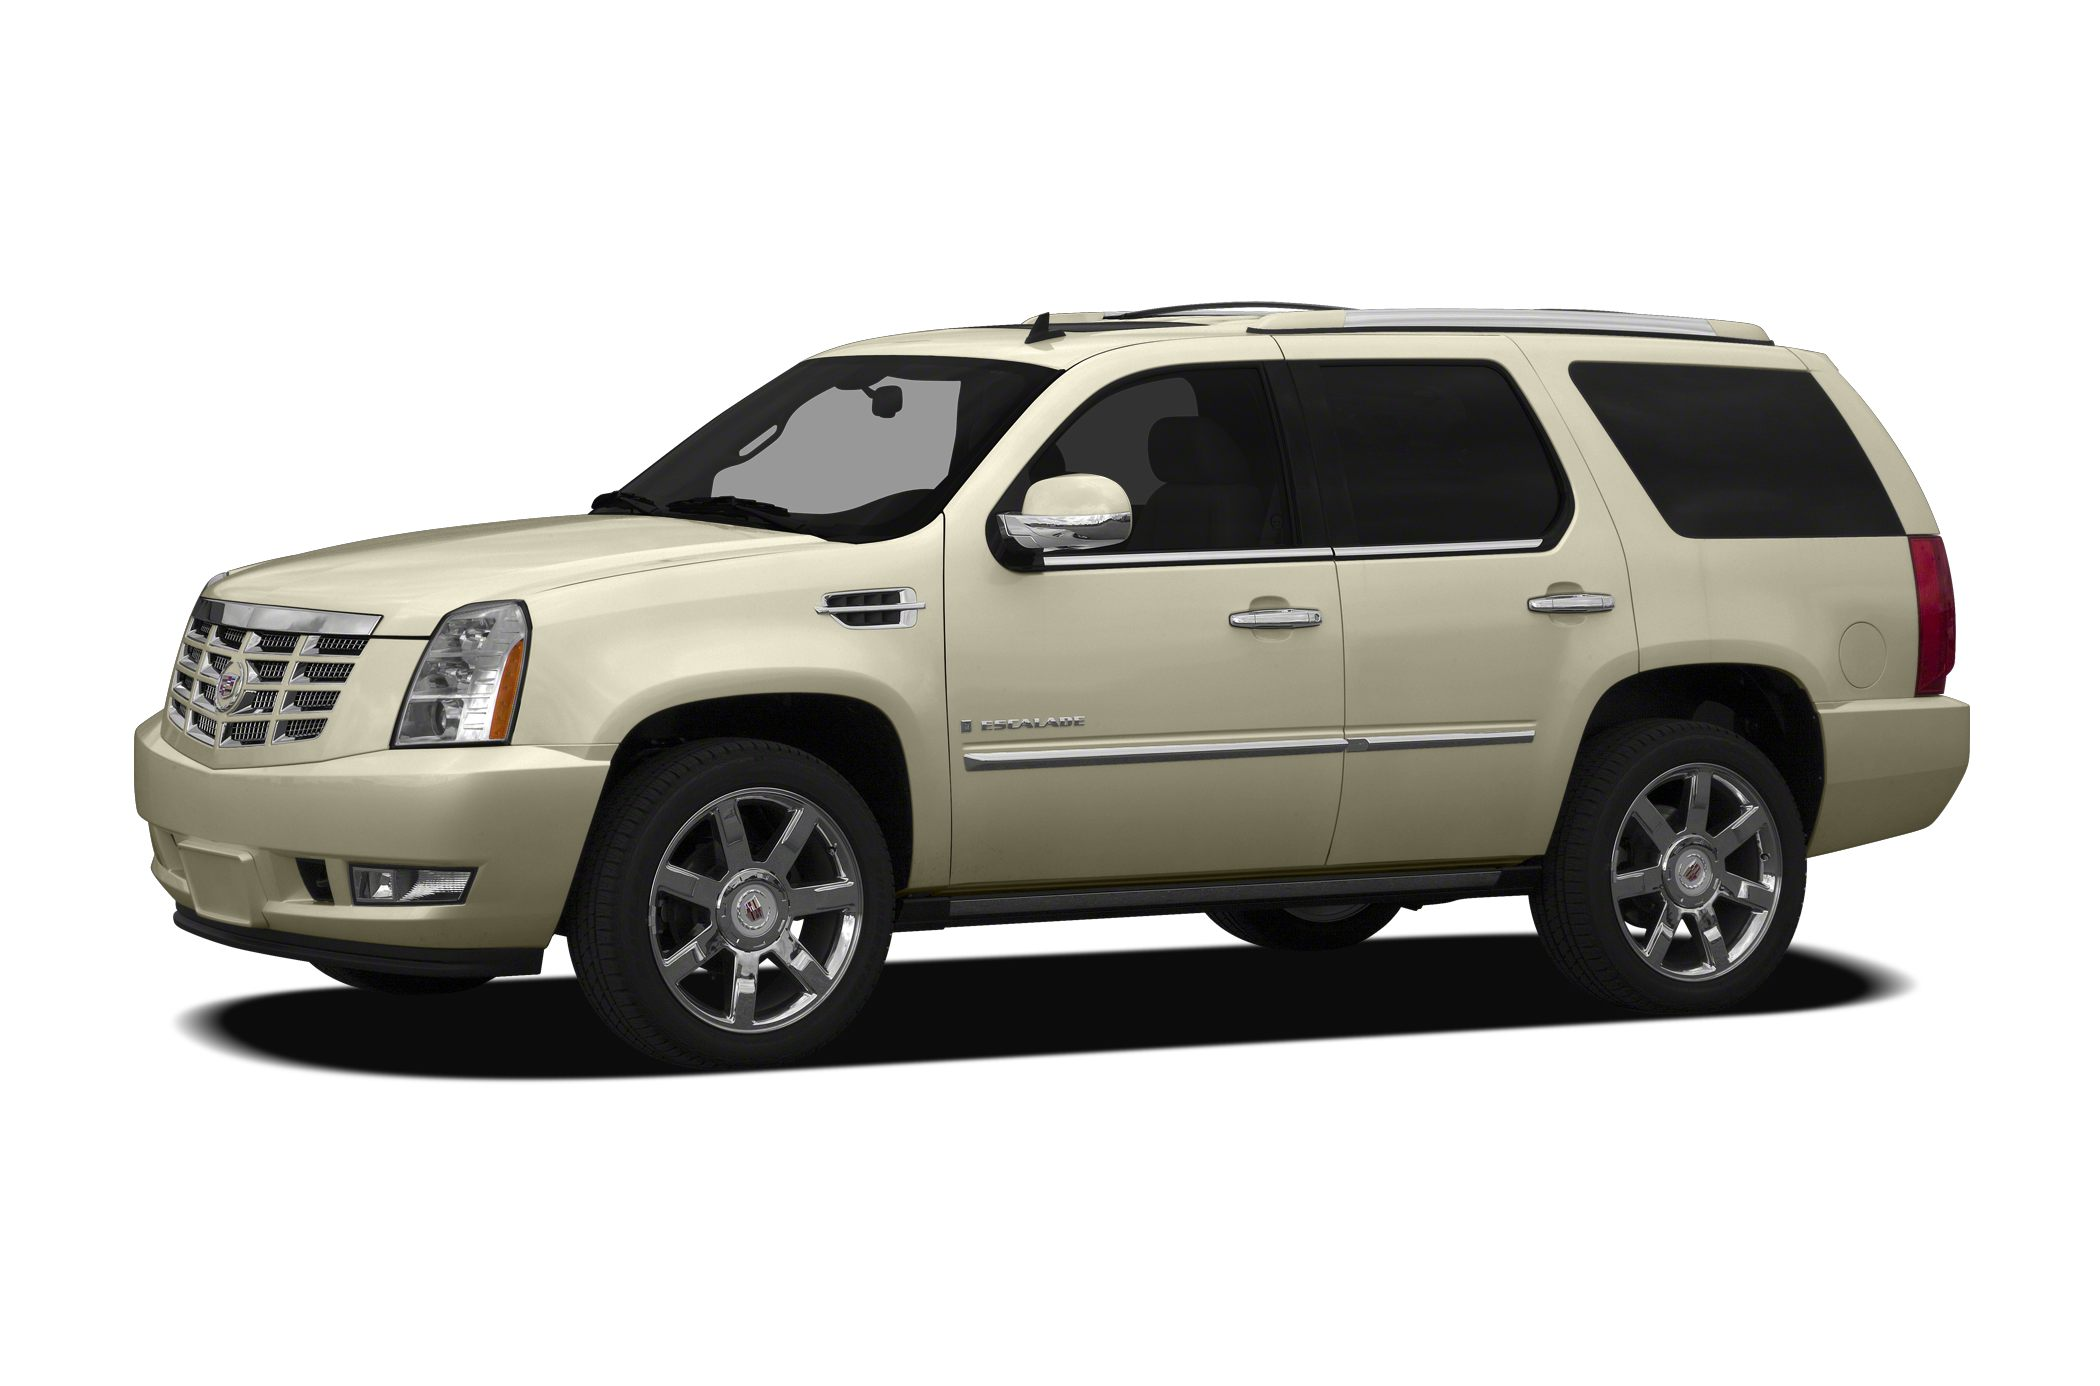 2012 cadillac escalade platinum edition all wheel drive pricing and options